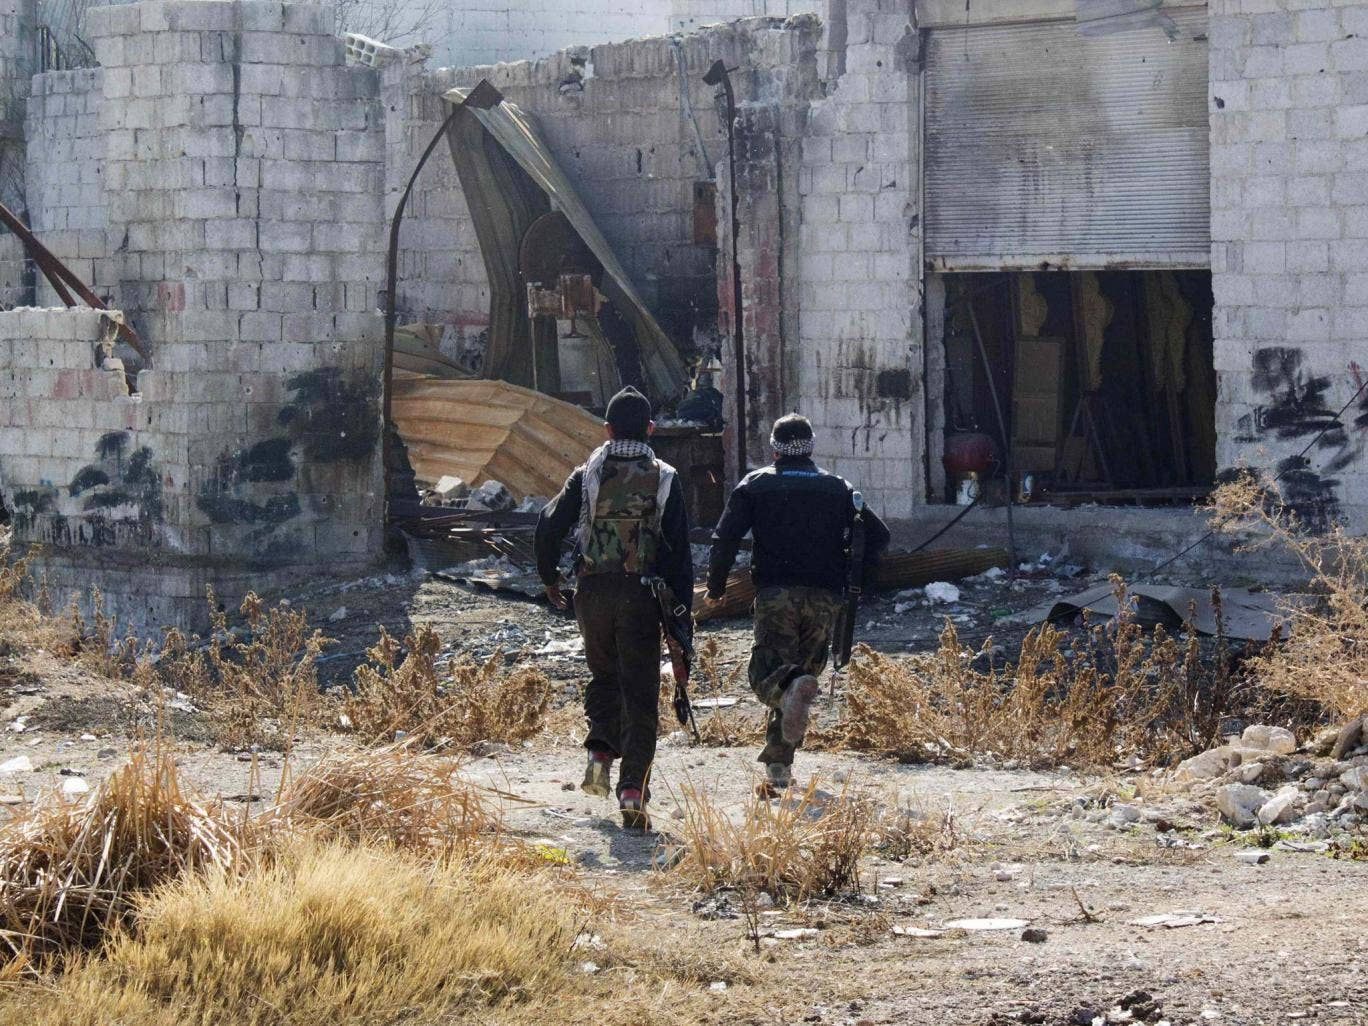 Free Syrian Army fighters carry their weapons as they run for cover in Daraya, near Damascus; Syamend Farhan says he is just happy to have escaped the terror of Syria